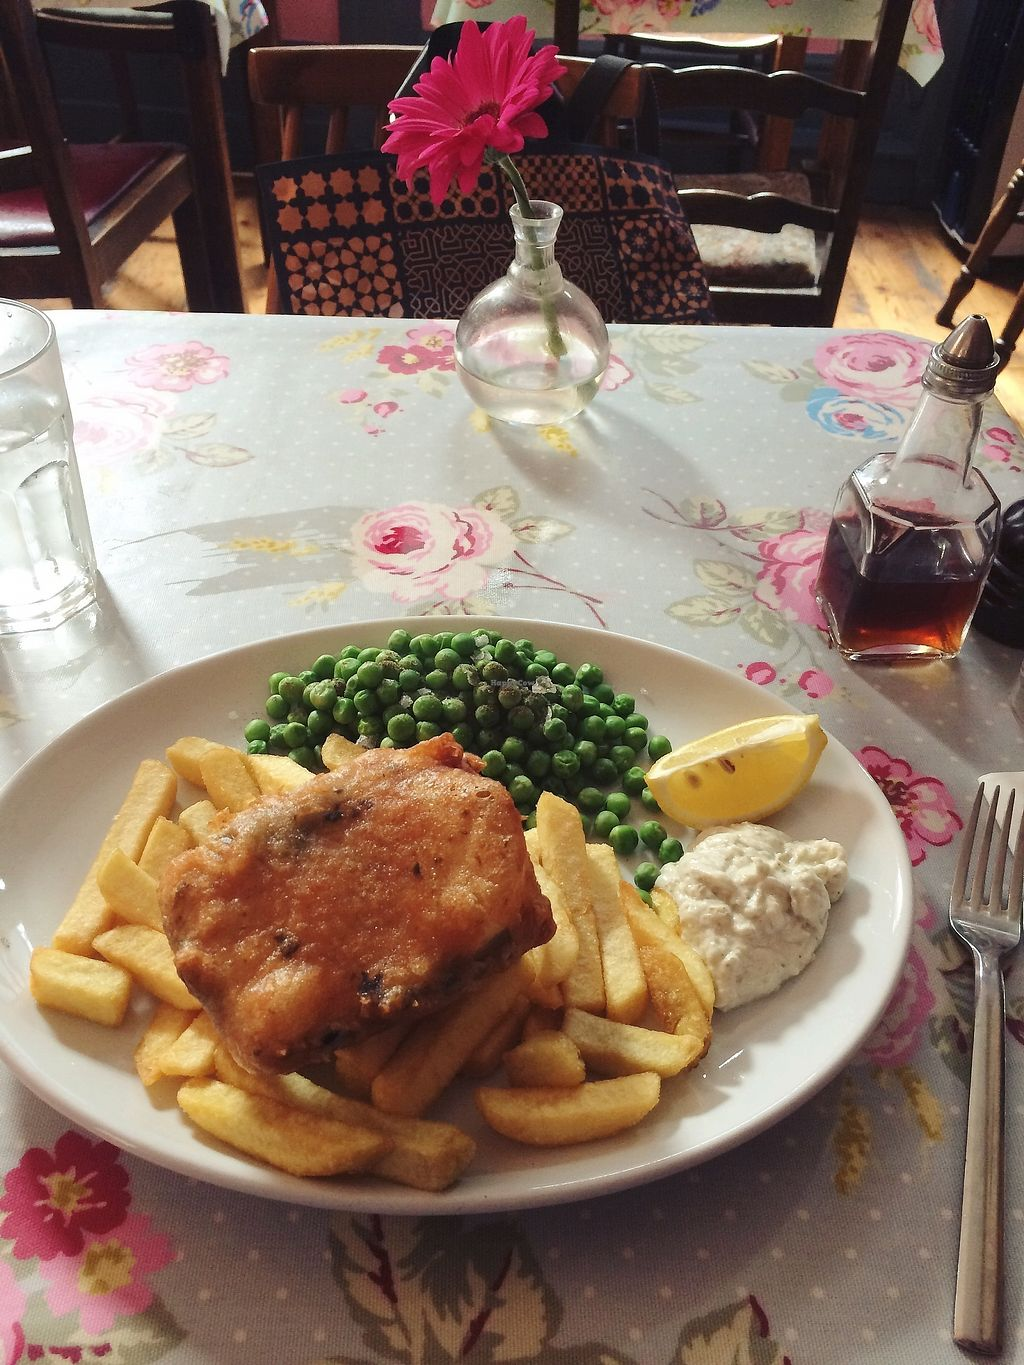 """Photo of Norman's Coach and Horses  by <a href=""""/members/profile/treemelody"""">treemelody</a> <br/>F*sh & Chips, September 2017 <br/> September 20, 2017  - <a href='/contact/abuse/image/33232/306418'>Report</a>"""